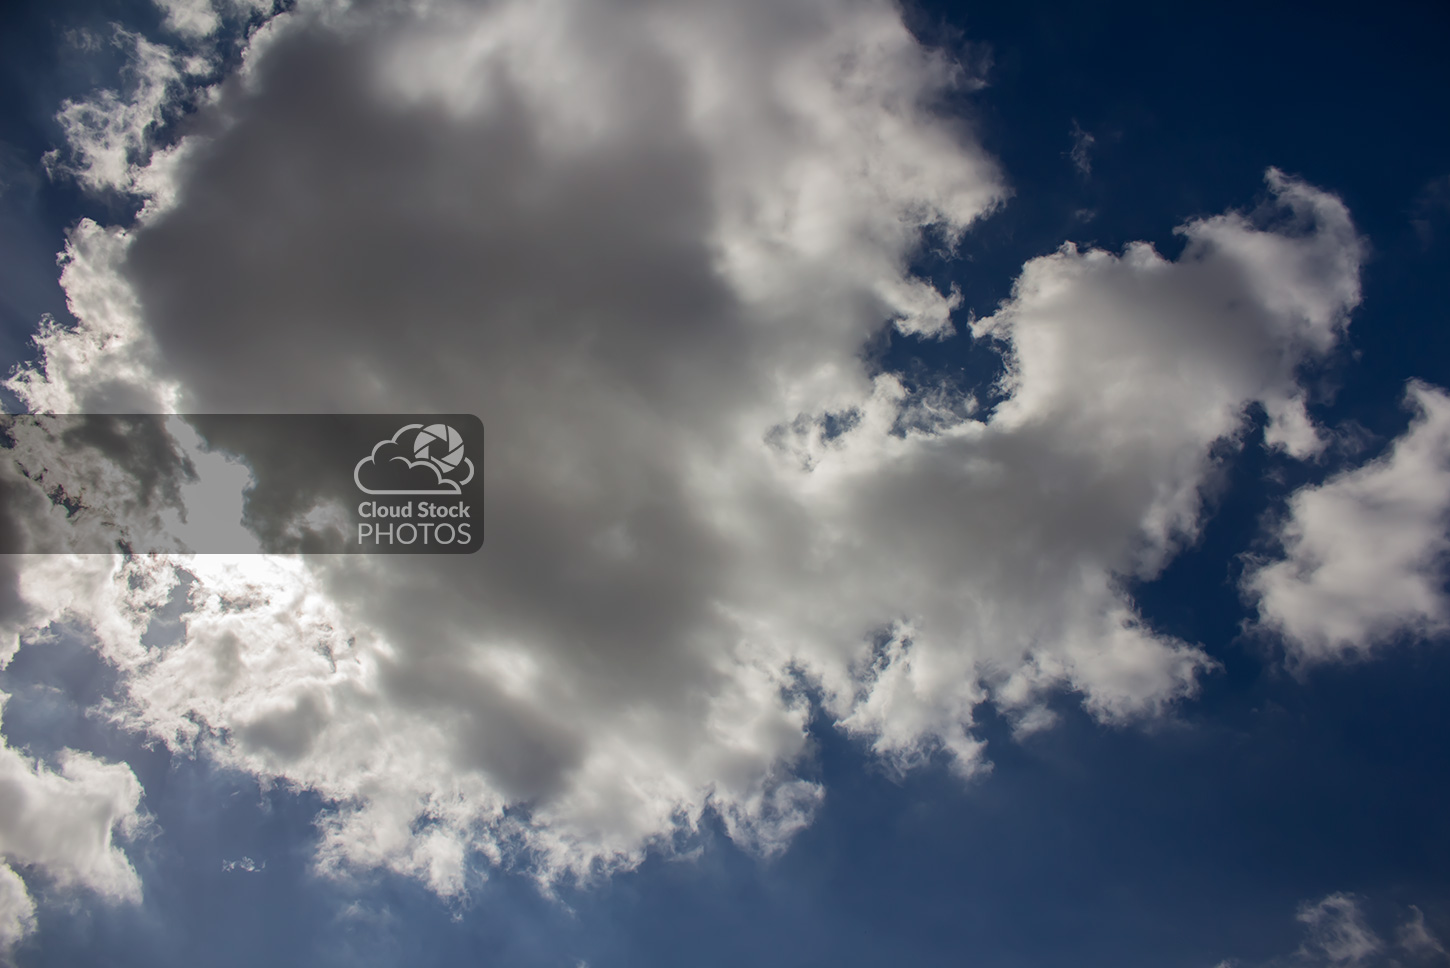 Stock photo of huge cumulus storm clouds. The sun's glow shines brightly through the left side and creates a dramatic glow that beautifully contrasts the thick, dark gray clouds. A somber blue sky in the background along with the dark clouds helps convey a powerful and eerie feeling.